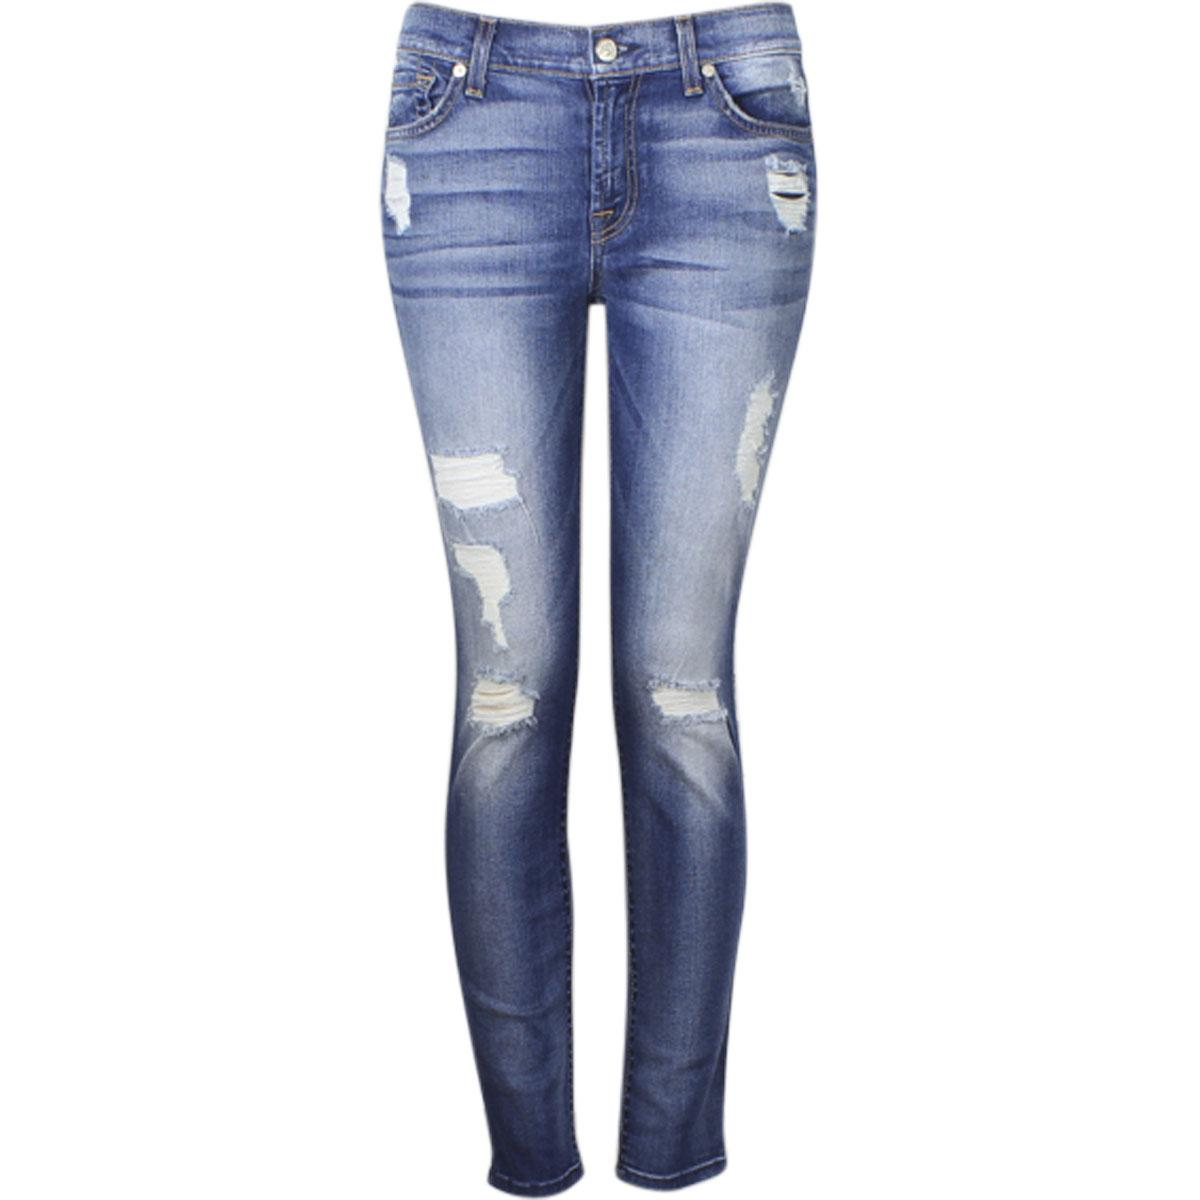 62786a6254 7 For All Mankind Women's The Ankle Skinny With Destroy Jeans